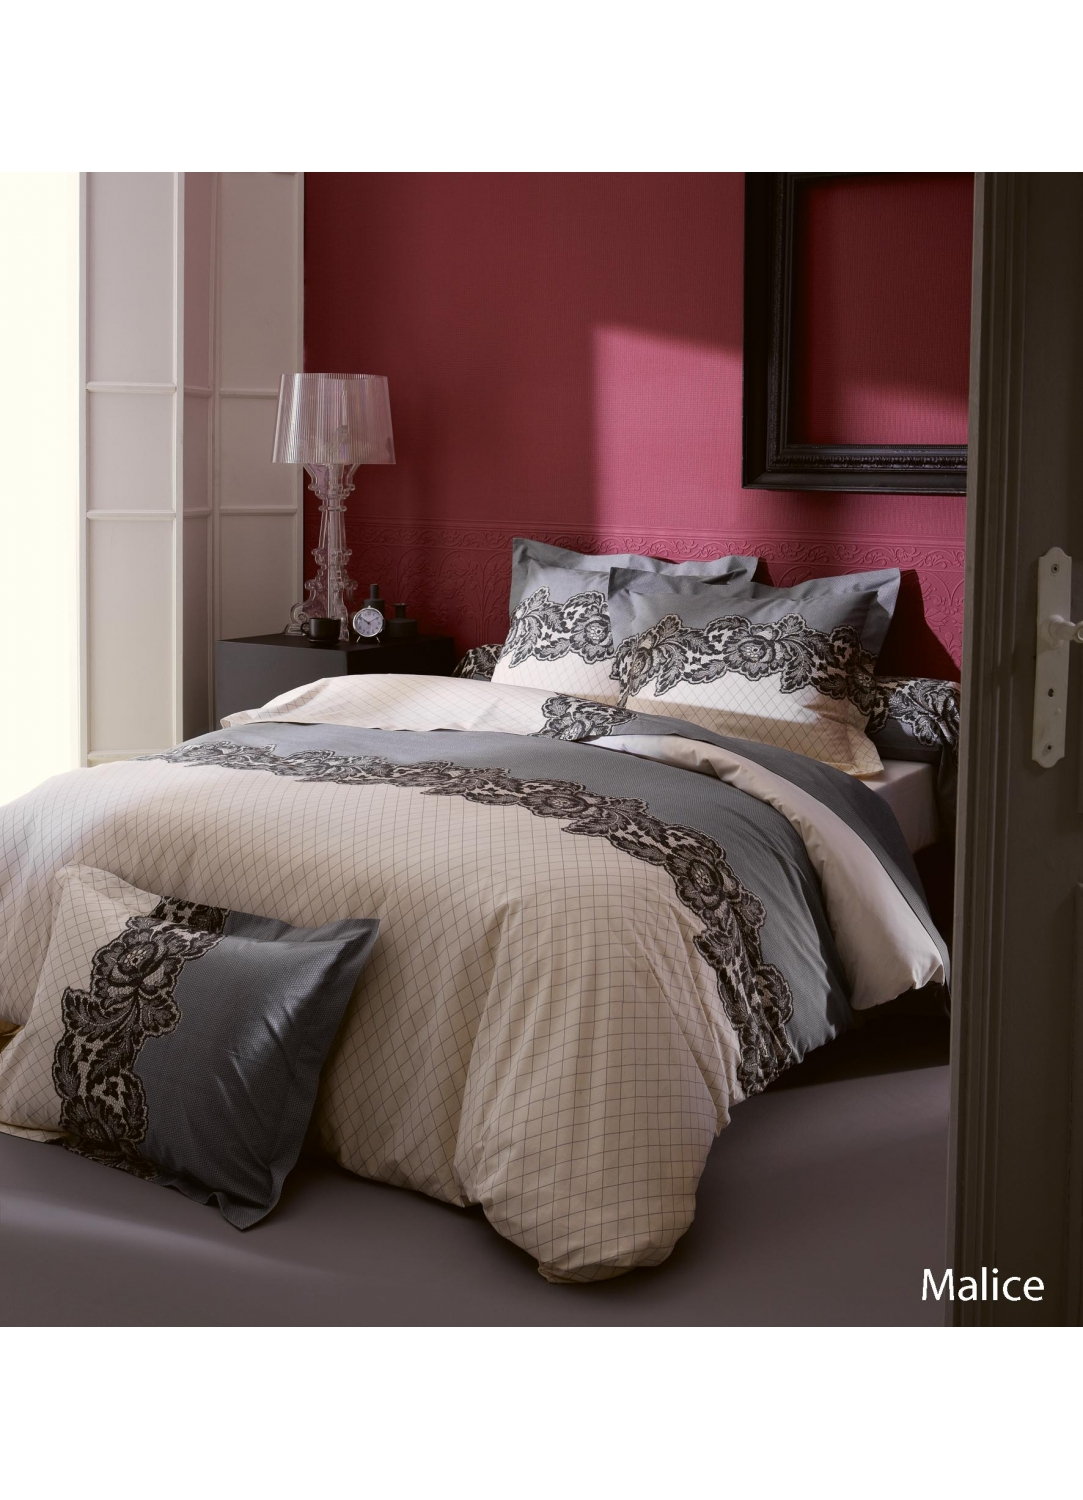 housse de couette malice imprim s dentelle gris. Black Bedroom Furniture Sets. Home Design Ideas